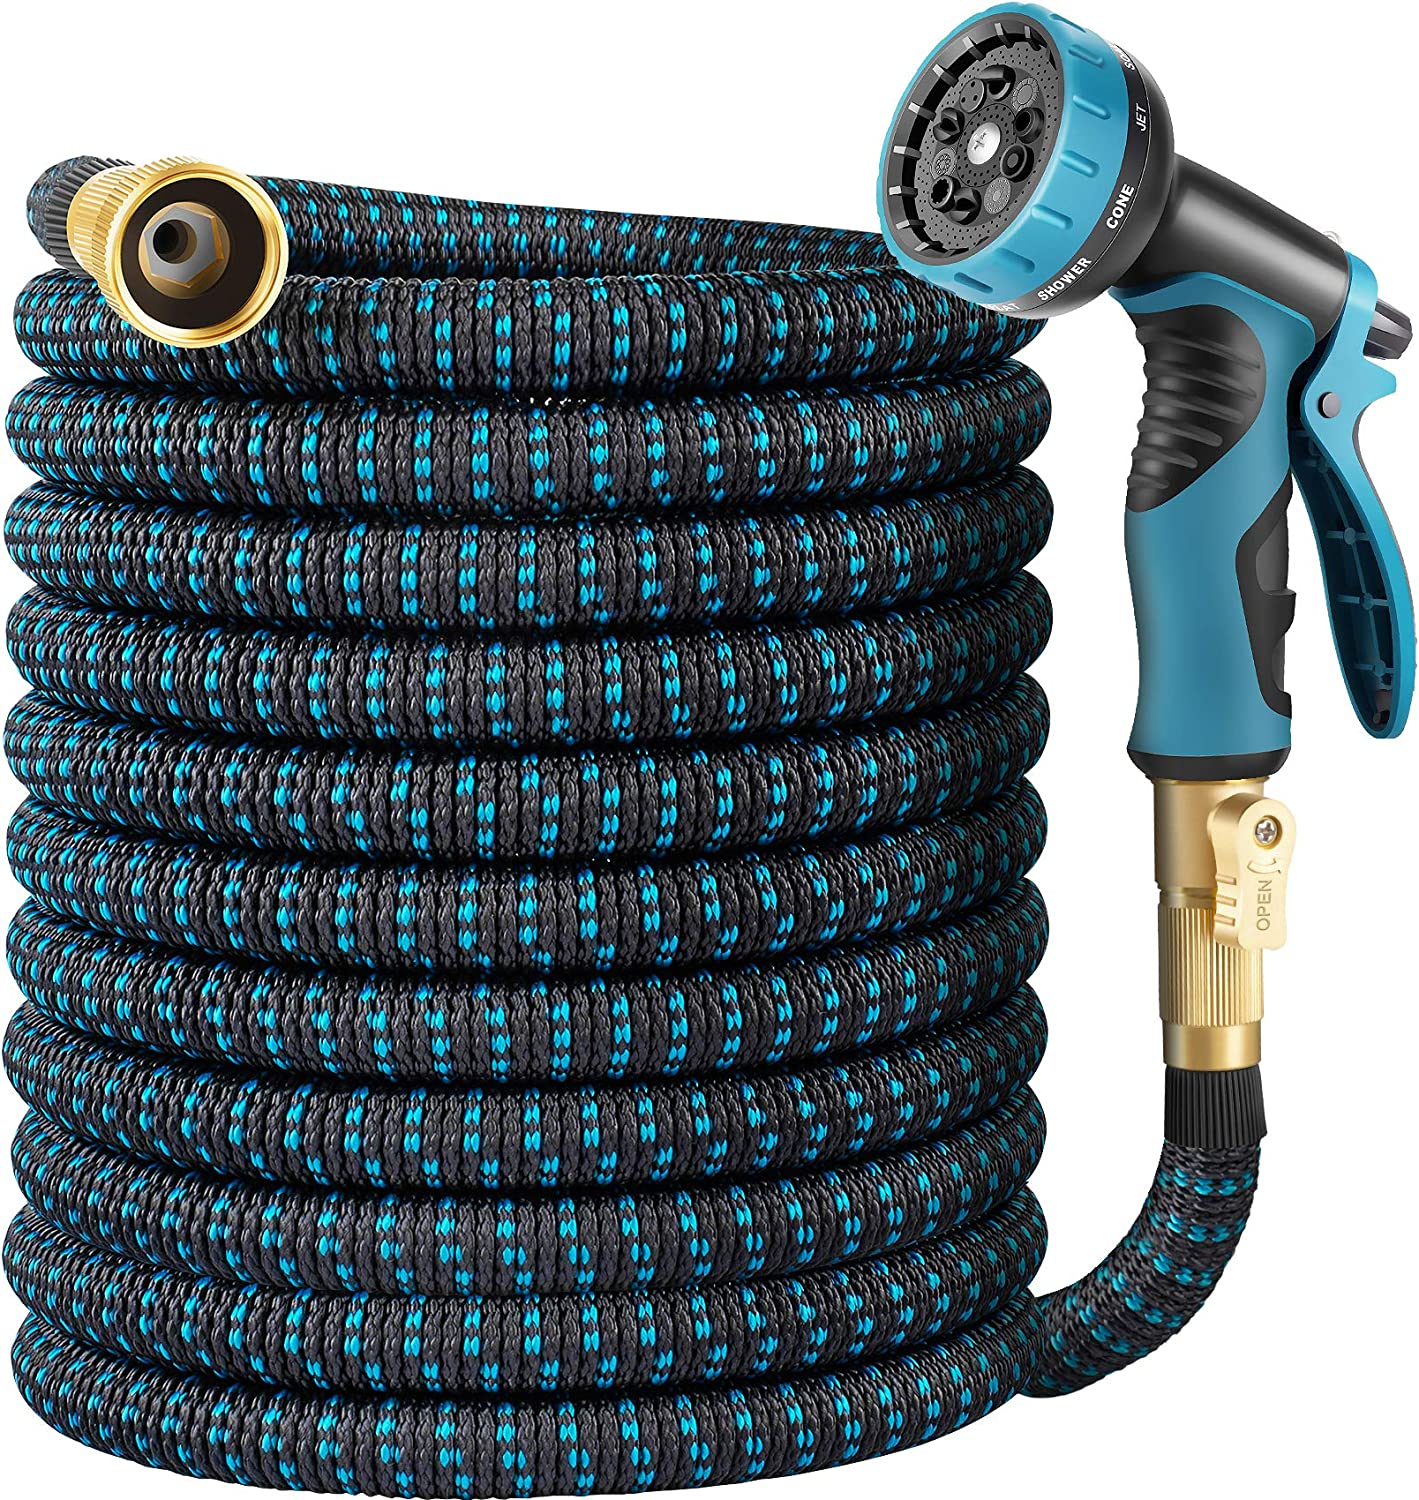 HARNMOR Expandable Garden Hose 50ft - Flexible Water Hose with 10 Function Nozzle, Double Latex Core and 3/4 Inch Solid Fittings,3 Times Expanding Kink Free Easy Storage Collapsible Water Hose